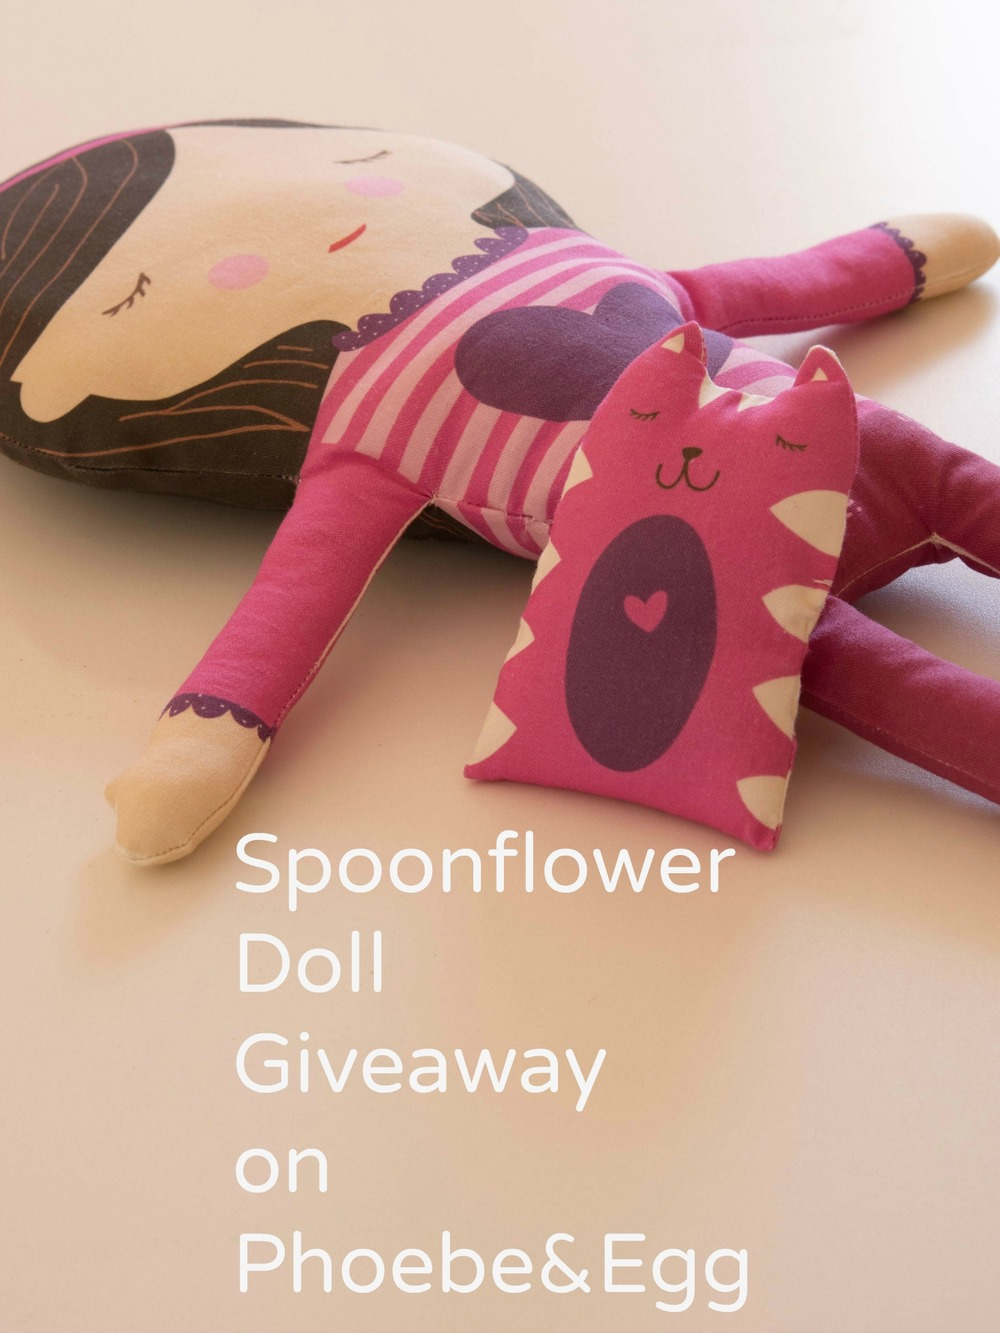 Spoonflower Doll Giveaway